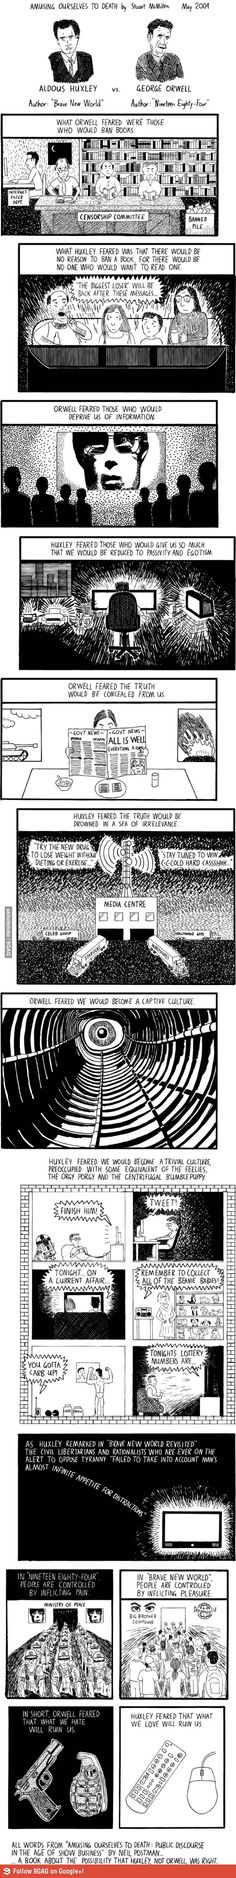 a literary analysis and a comparison of a brave new world by aldous huxley and 1984 by george orwell Of dystopian novels: aldous huxley's ''brave new world'' and george orwell's '' 1984'' and shows how in  hypnopaedia in brave world: quotes & analysis.